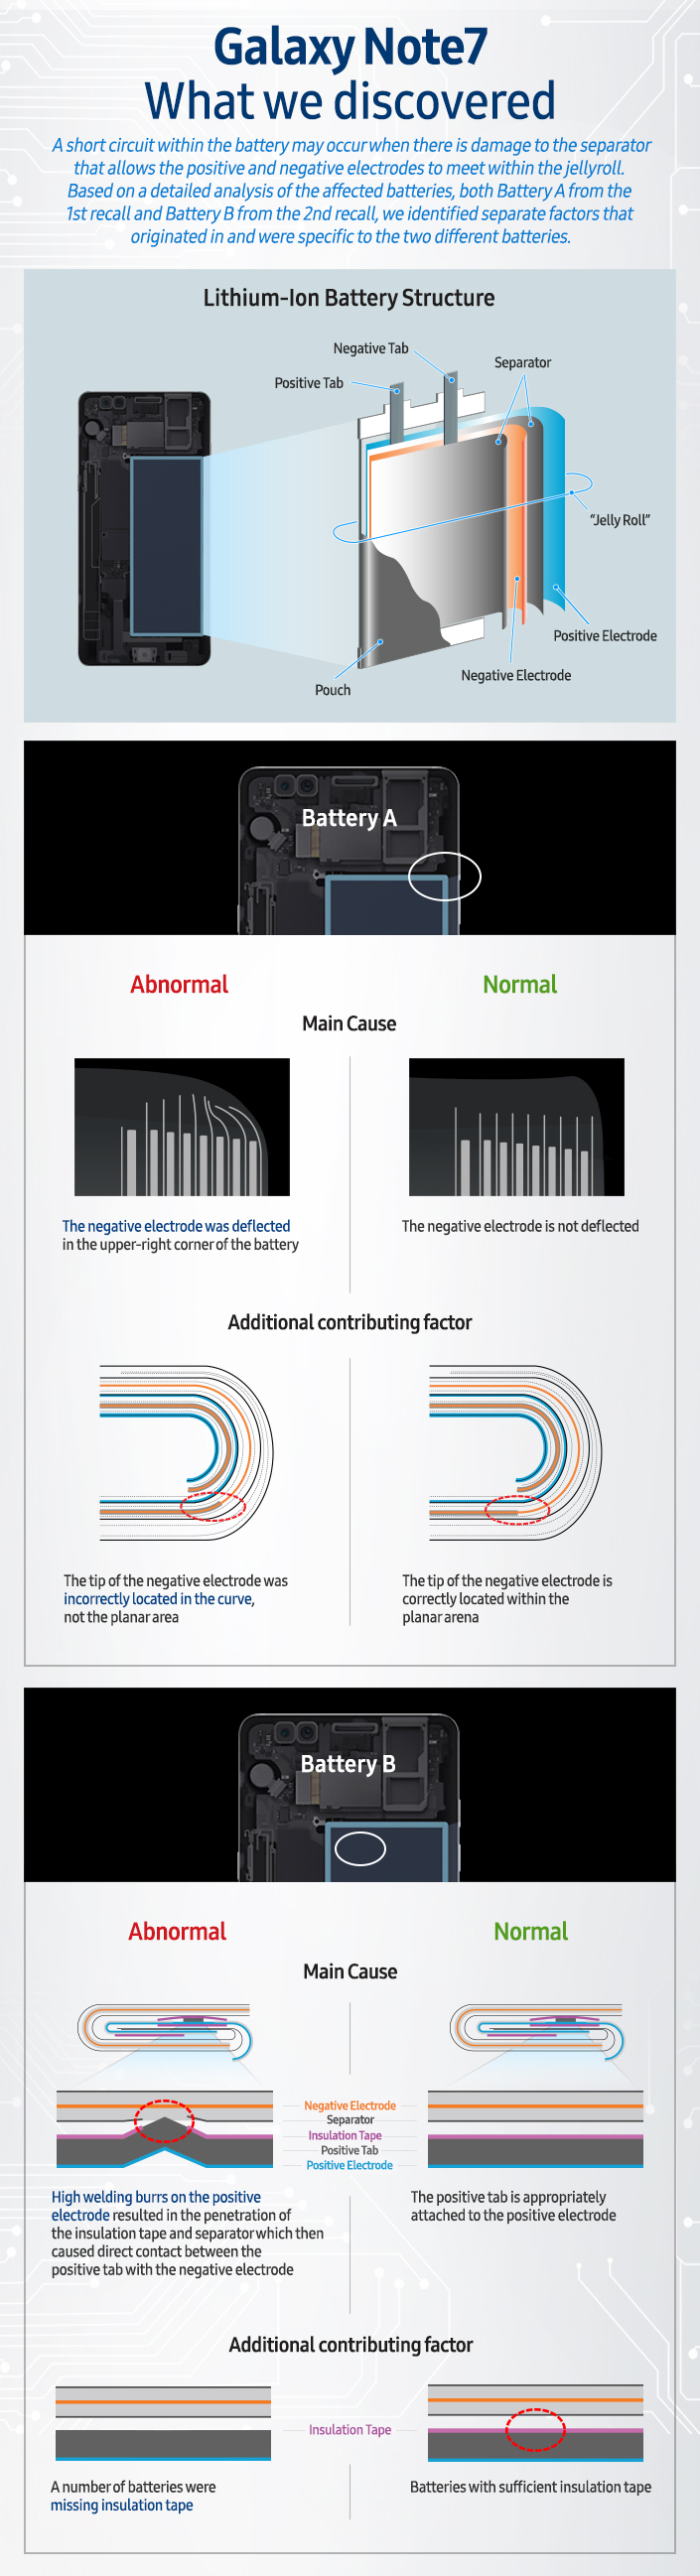 Galaxy Note7 What We Discovered Infographic Main 1